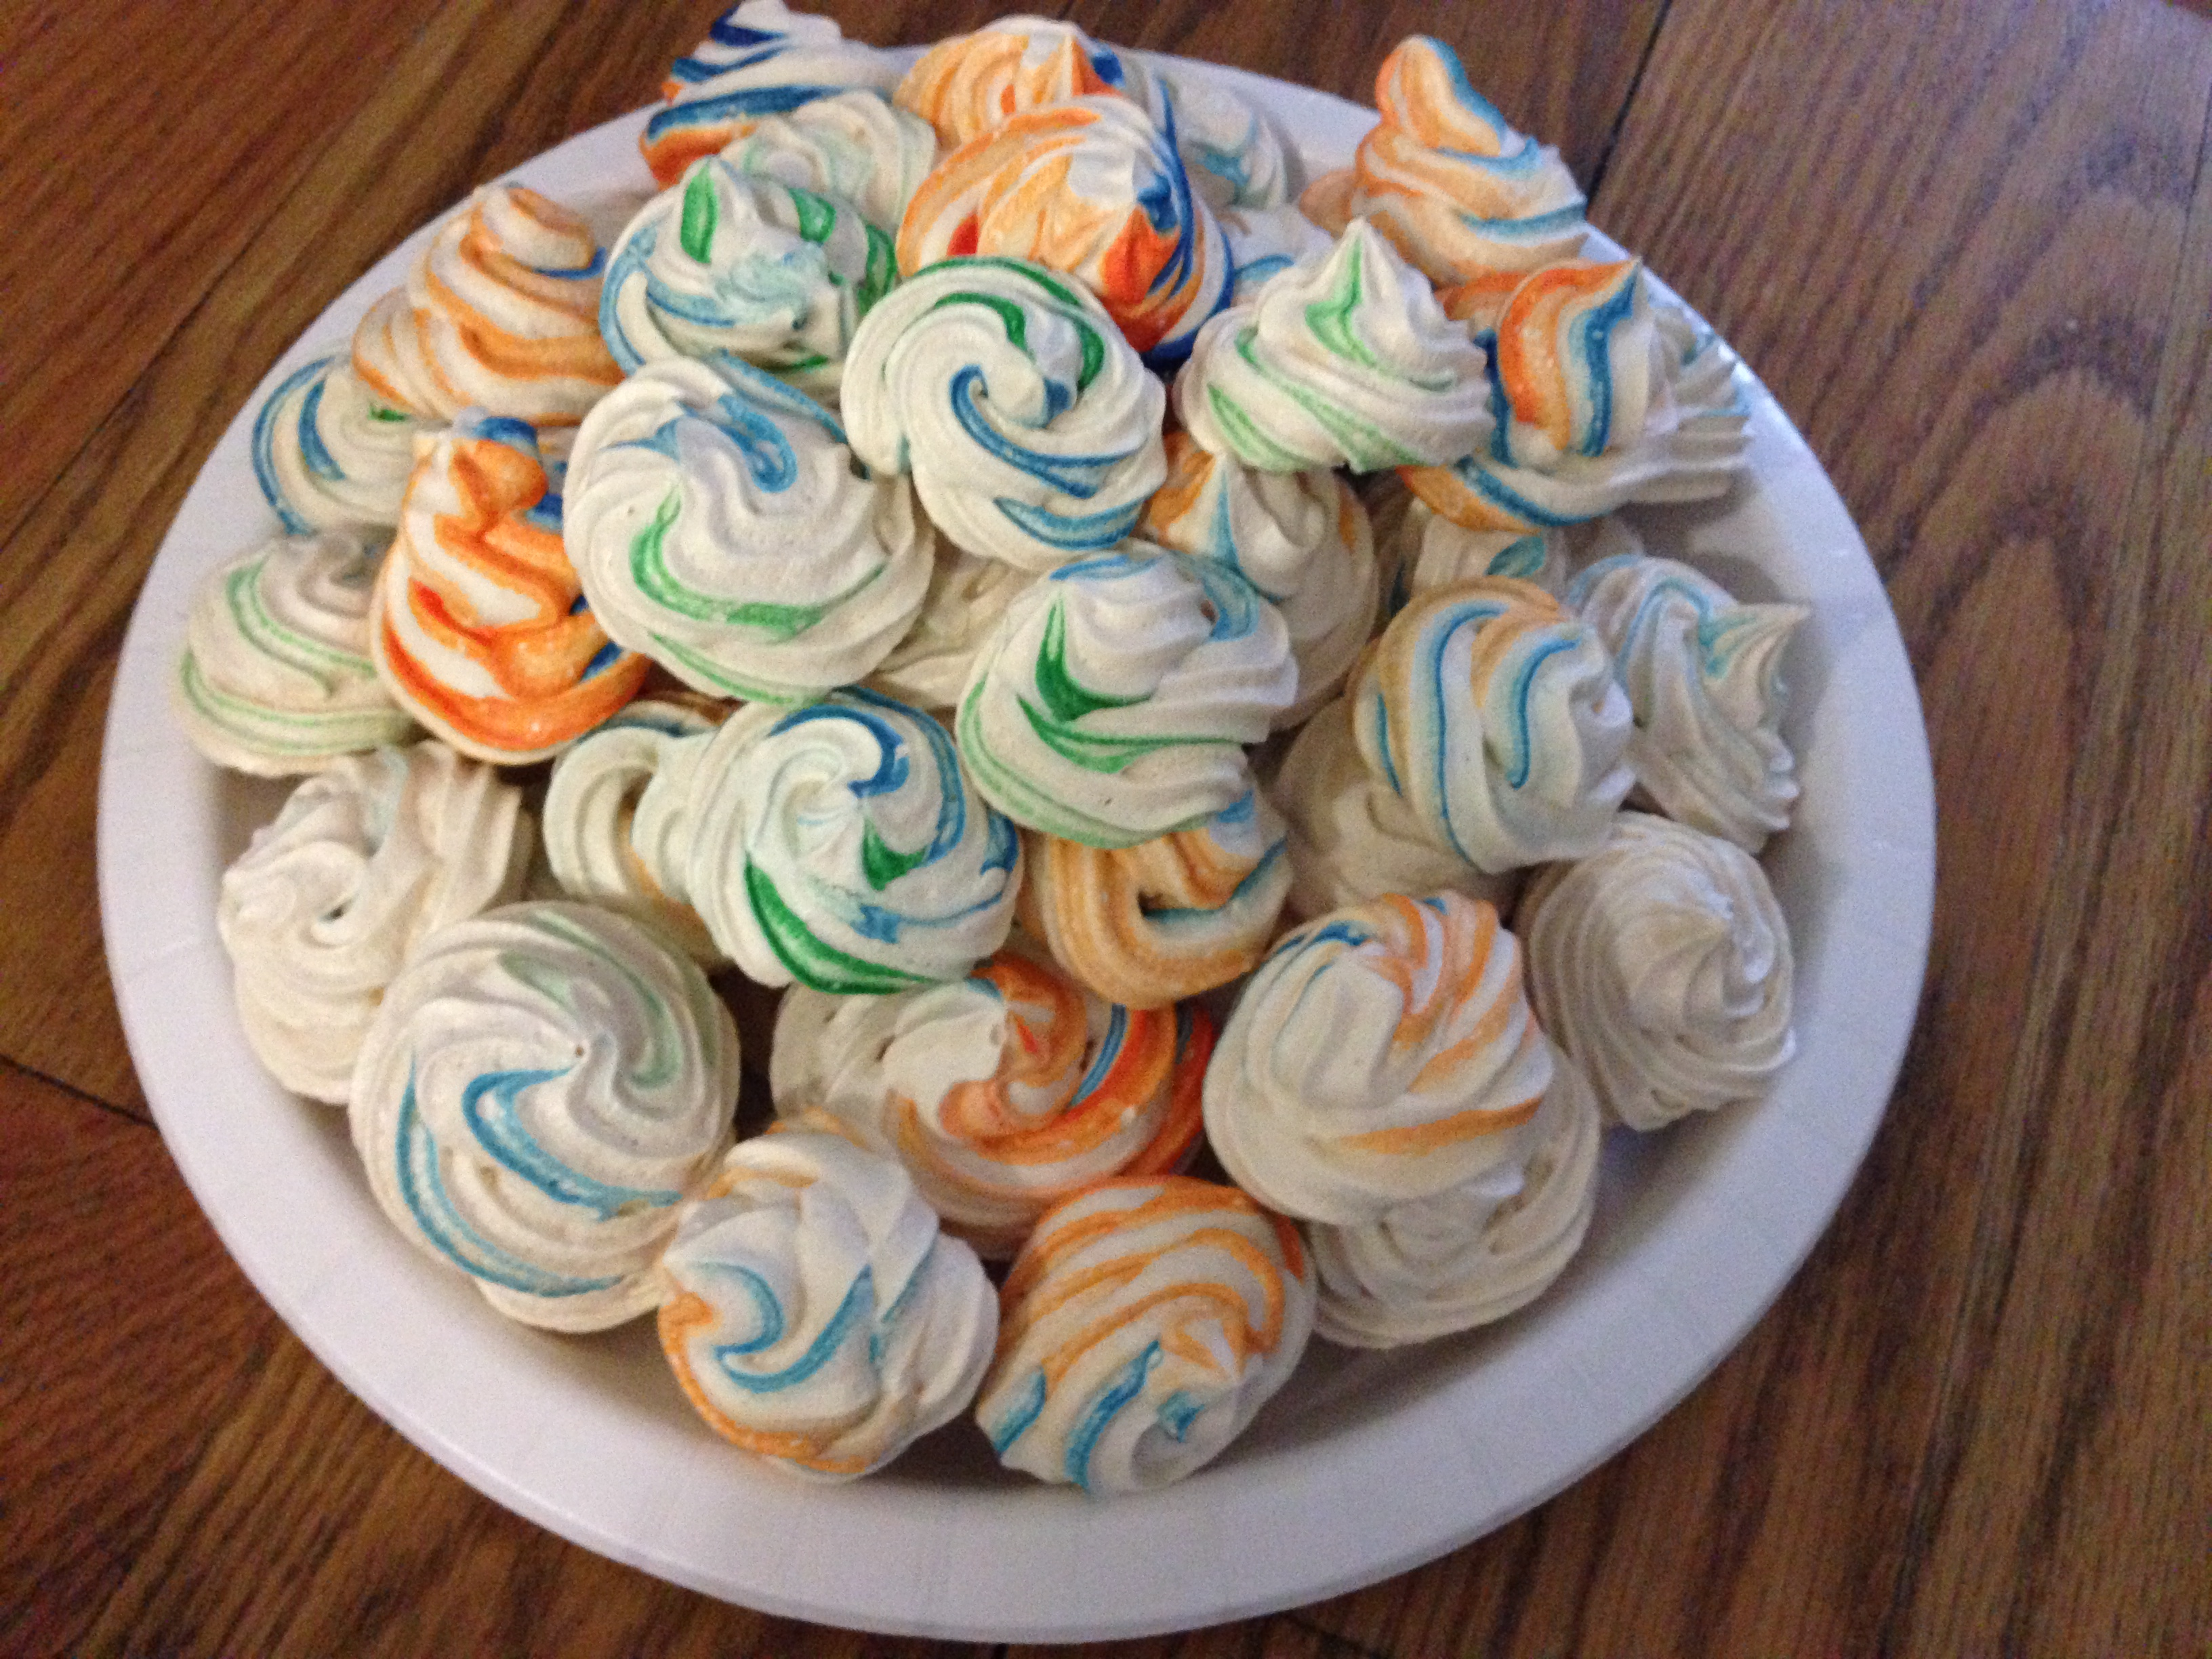 know I let you guys down when I made Mini Meringue Swirls last time ...